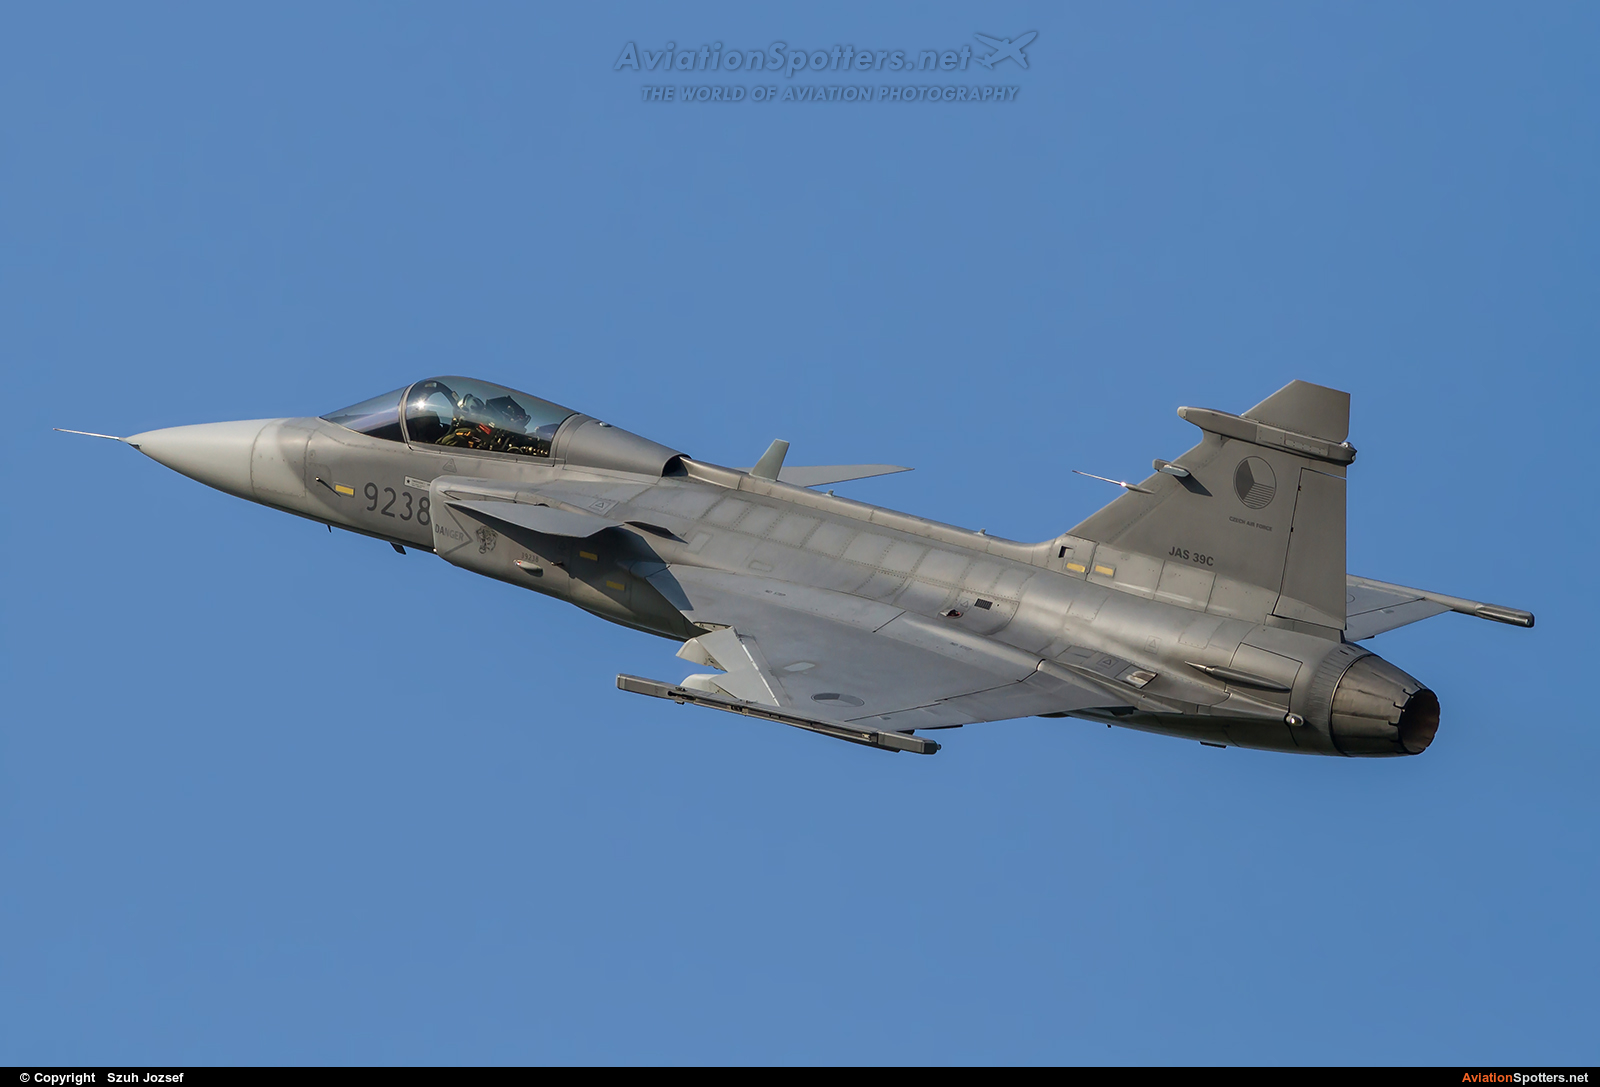 Czech - Air Force  -  JAS 39C Gripen  (9238) By Szuh Jozsef (szuh jozsef)